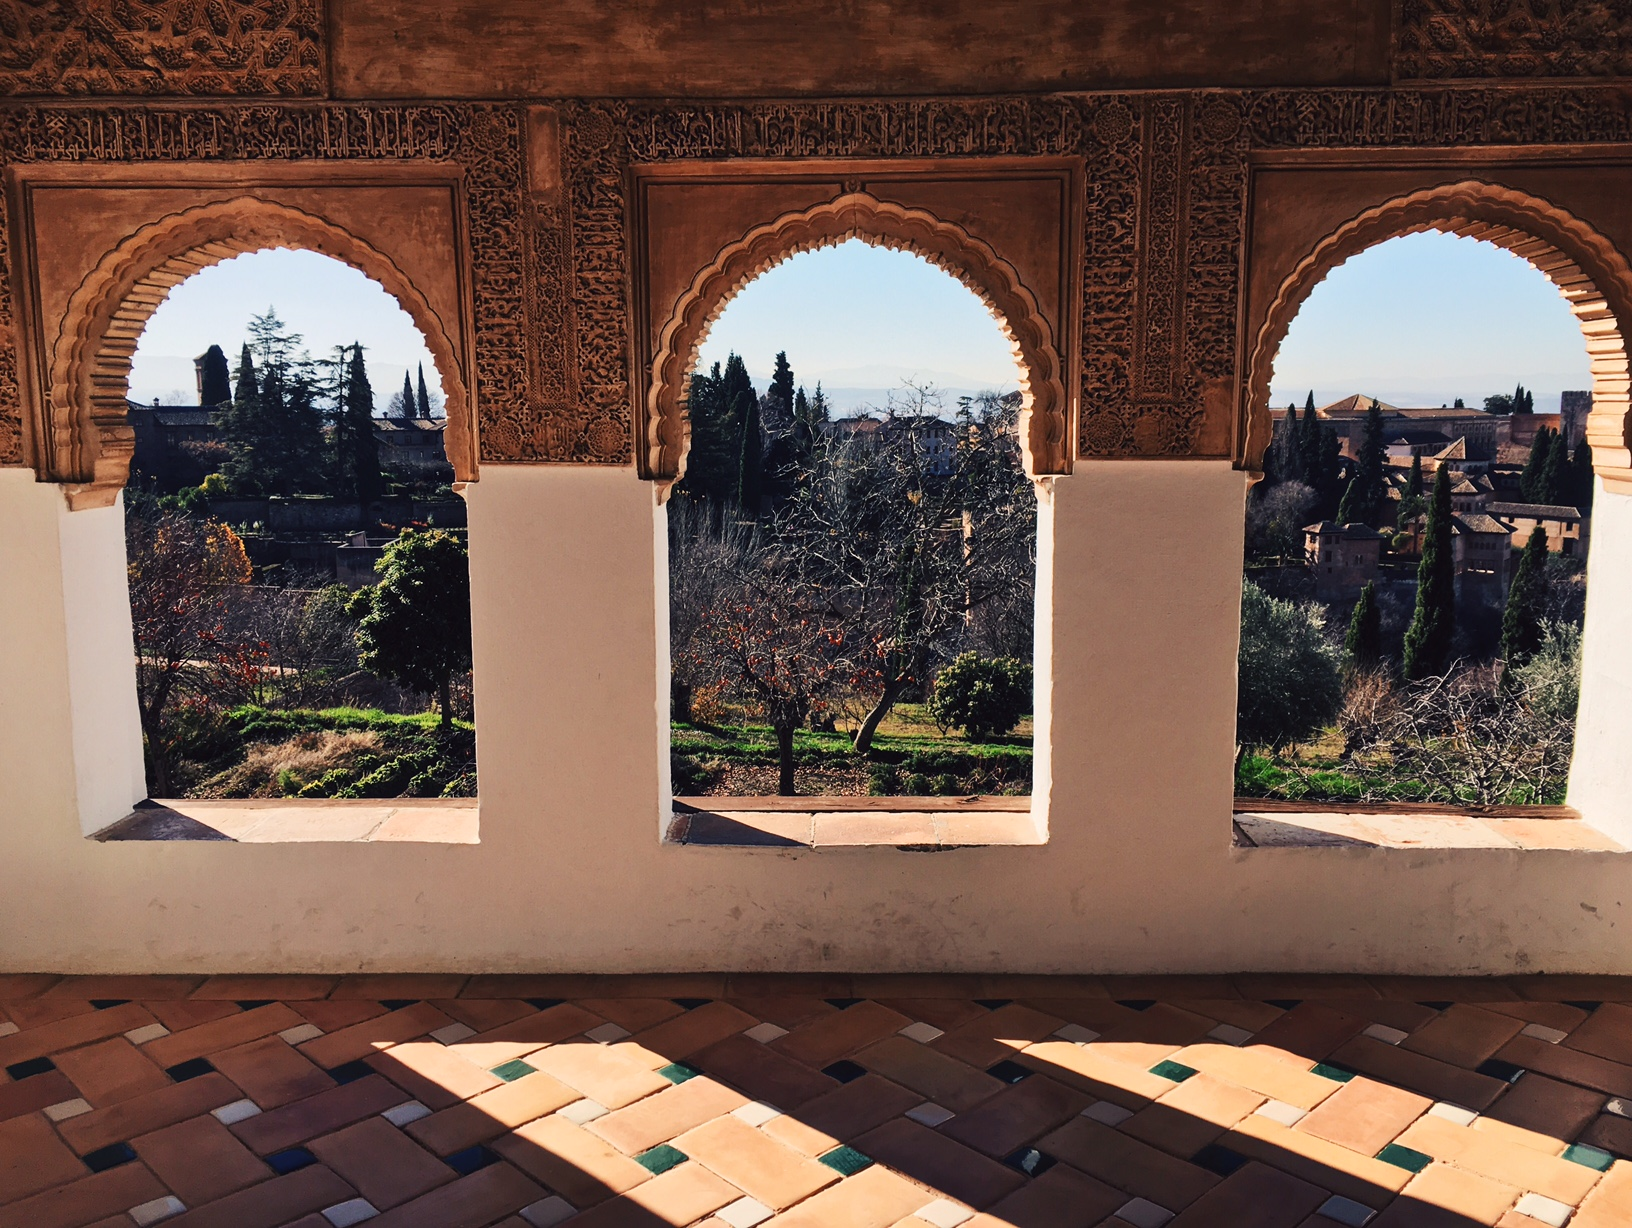 In the background you can see the Alhambra. Hello!